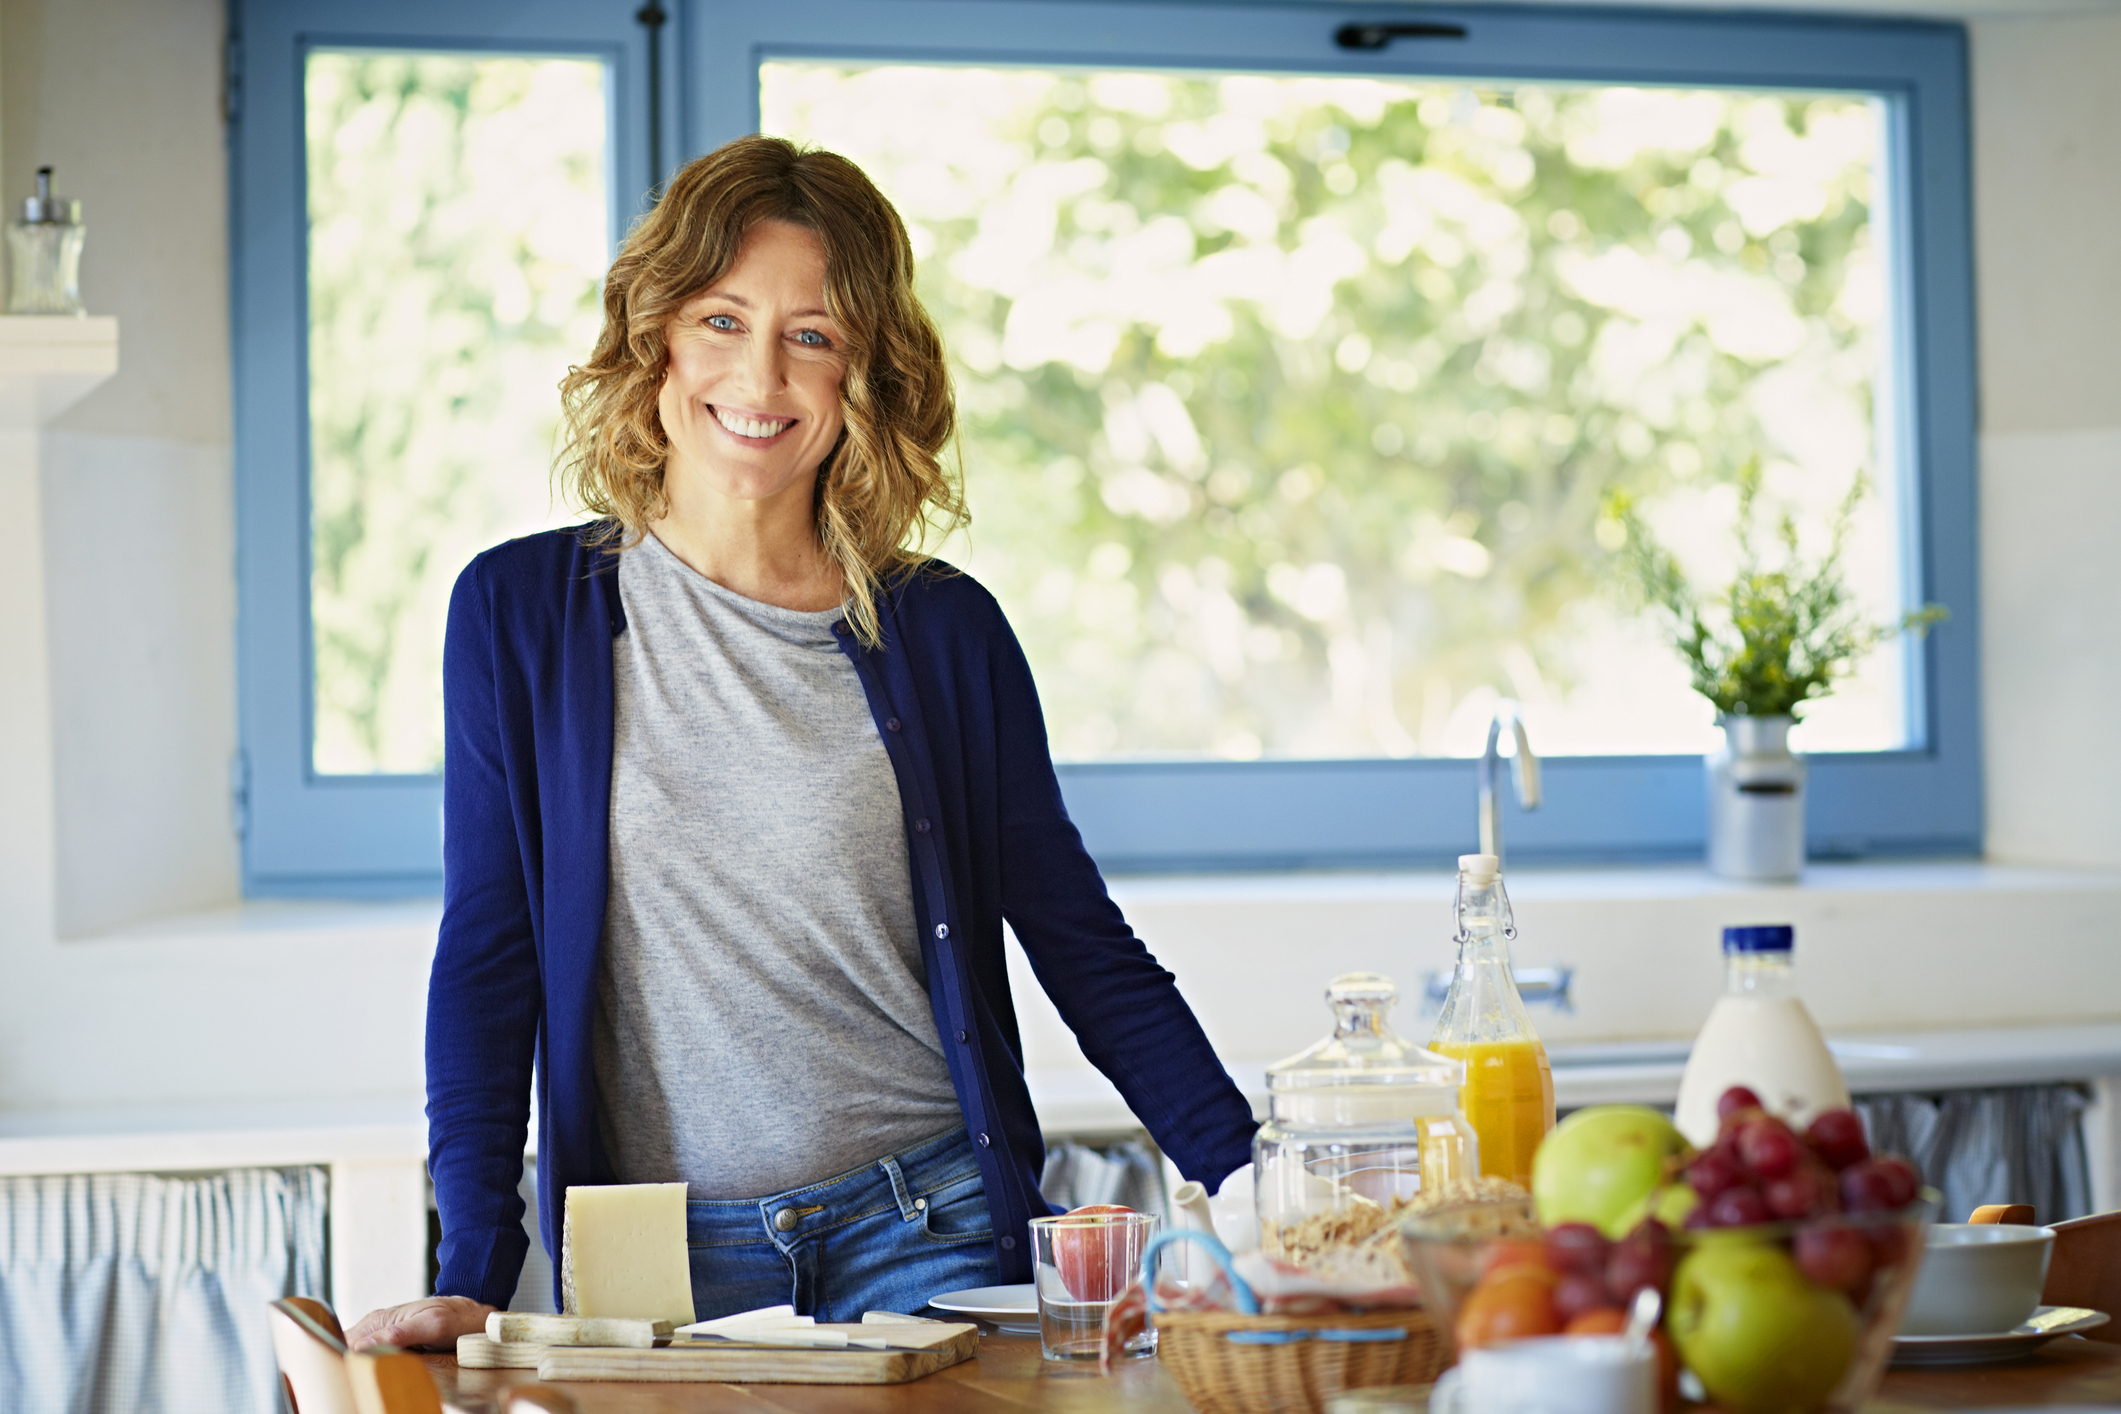 Portrait of happy woman standing at breakfast table in kitchen